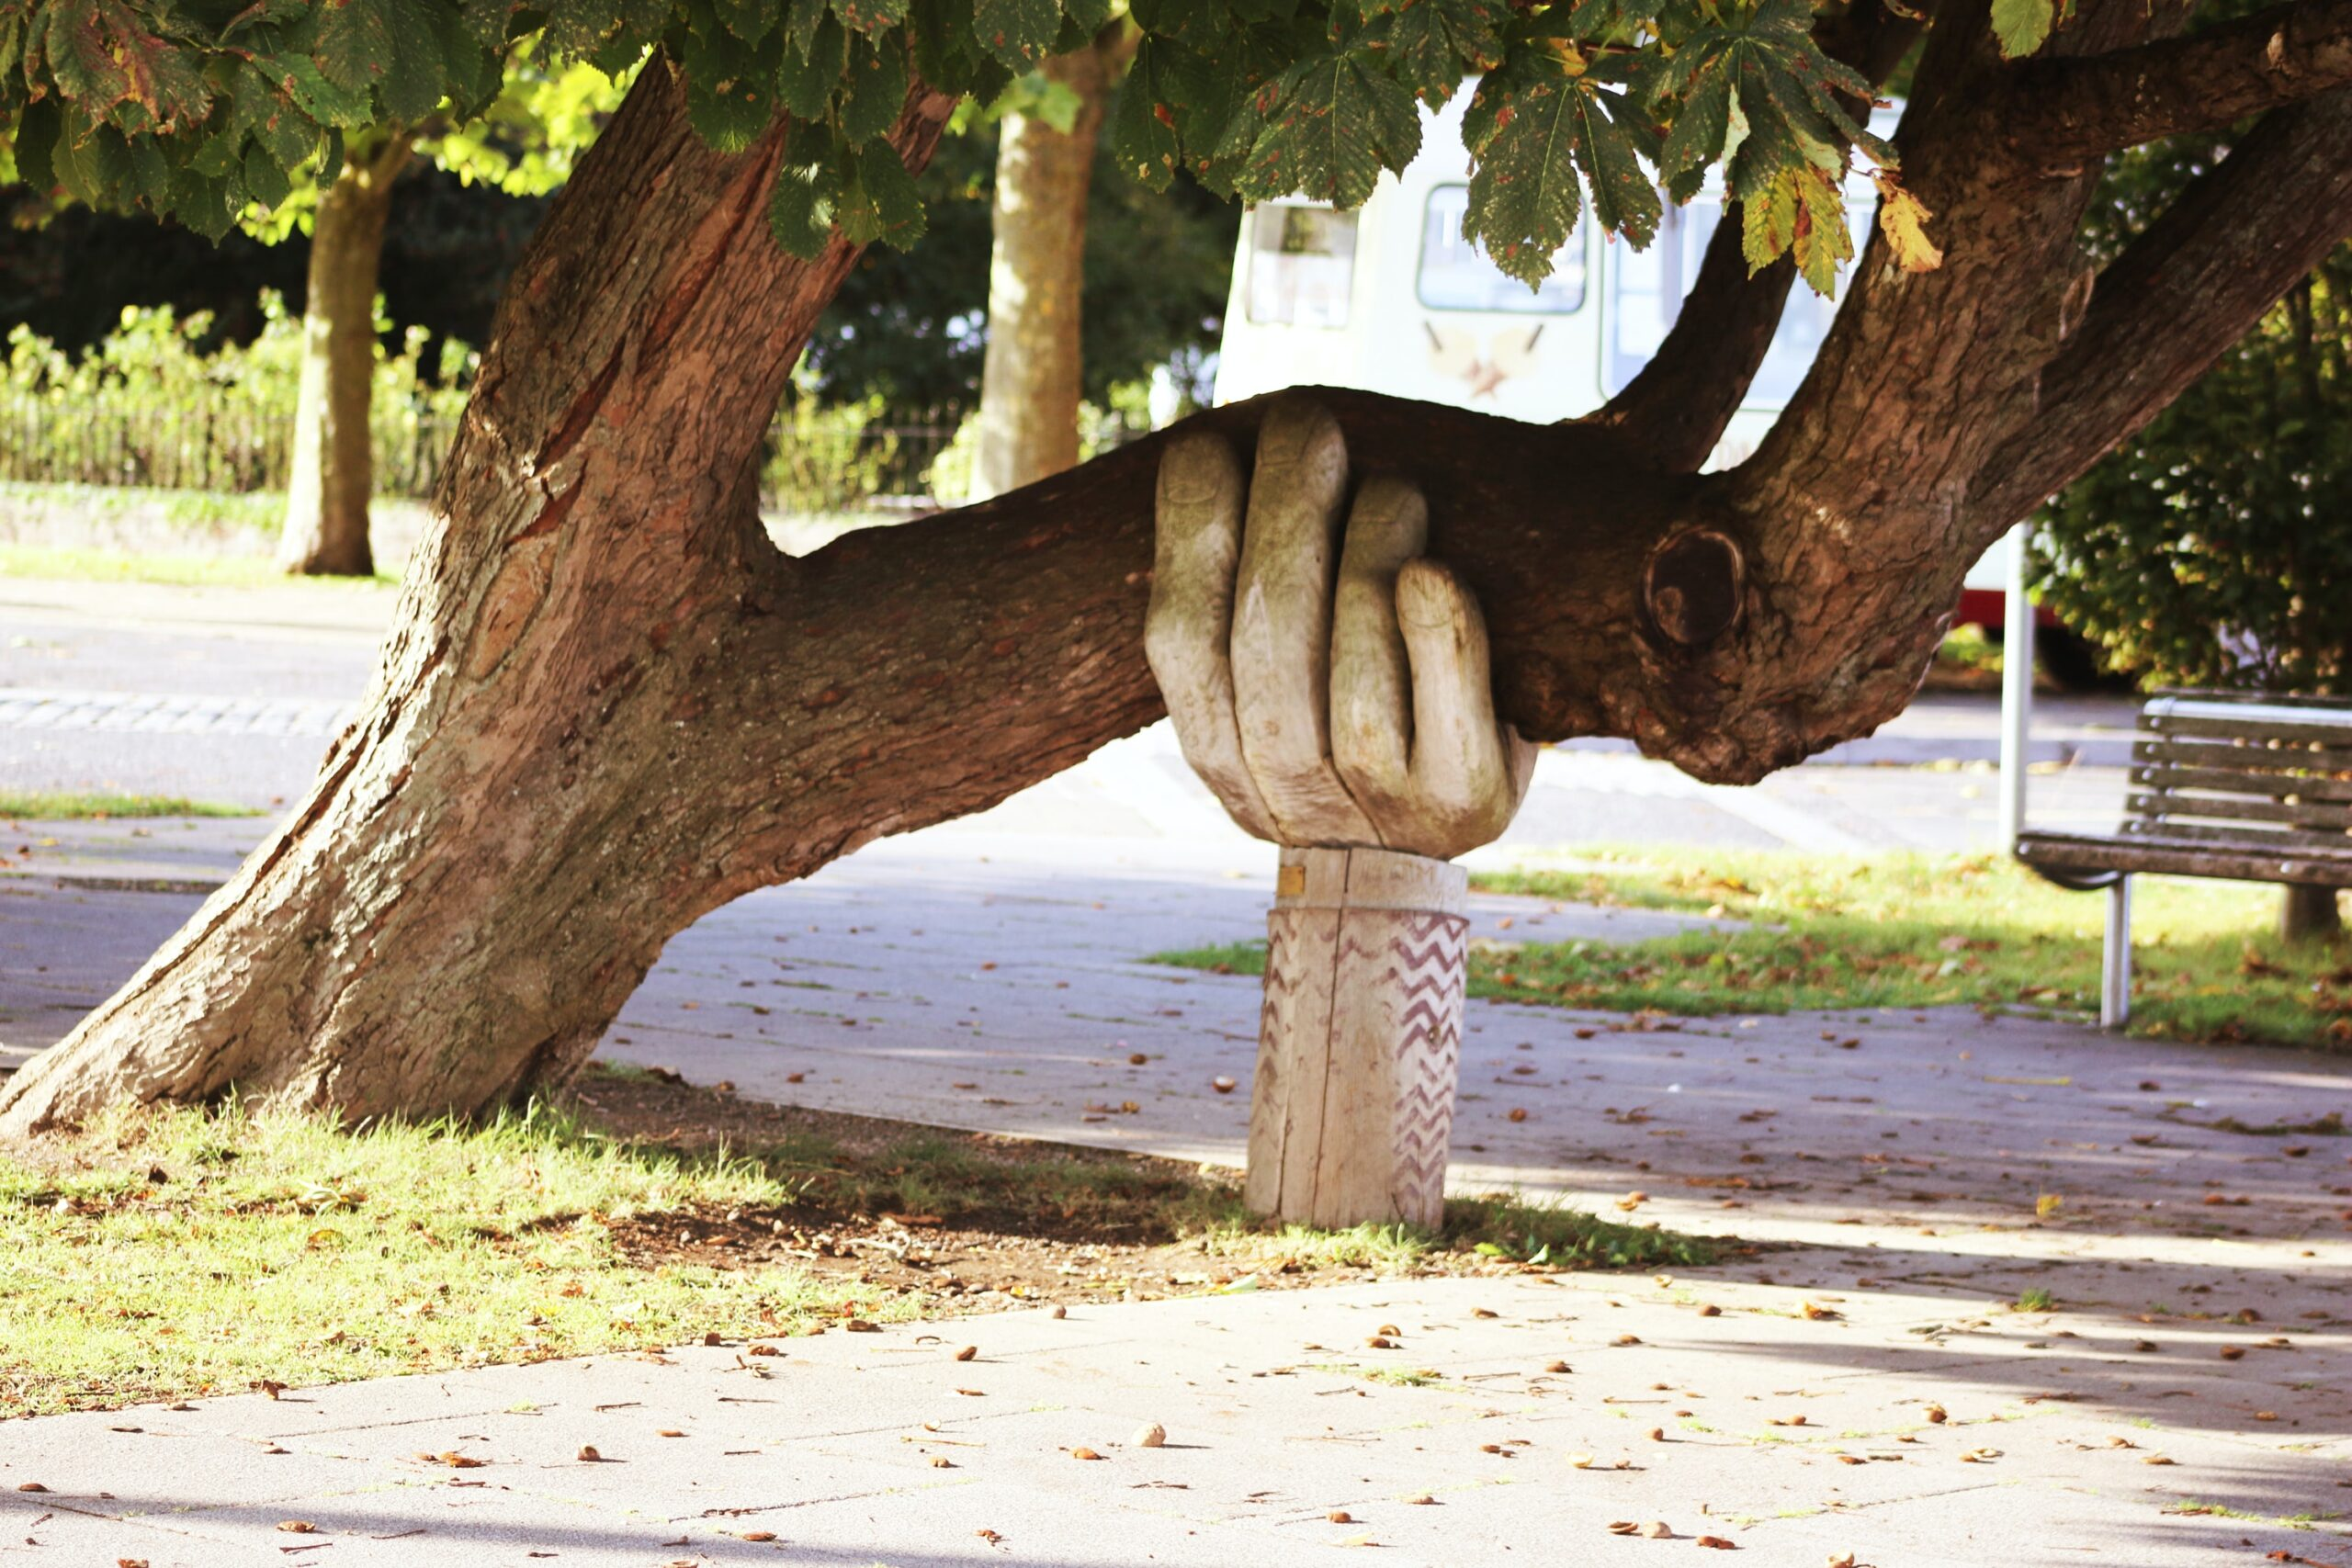 A large wooden hand holds up a tree that is leaning too close to the ground.